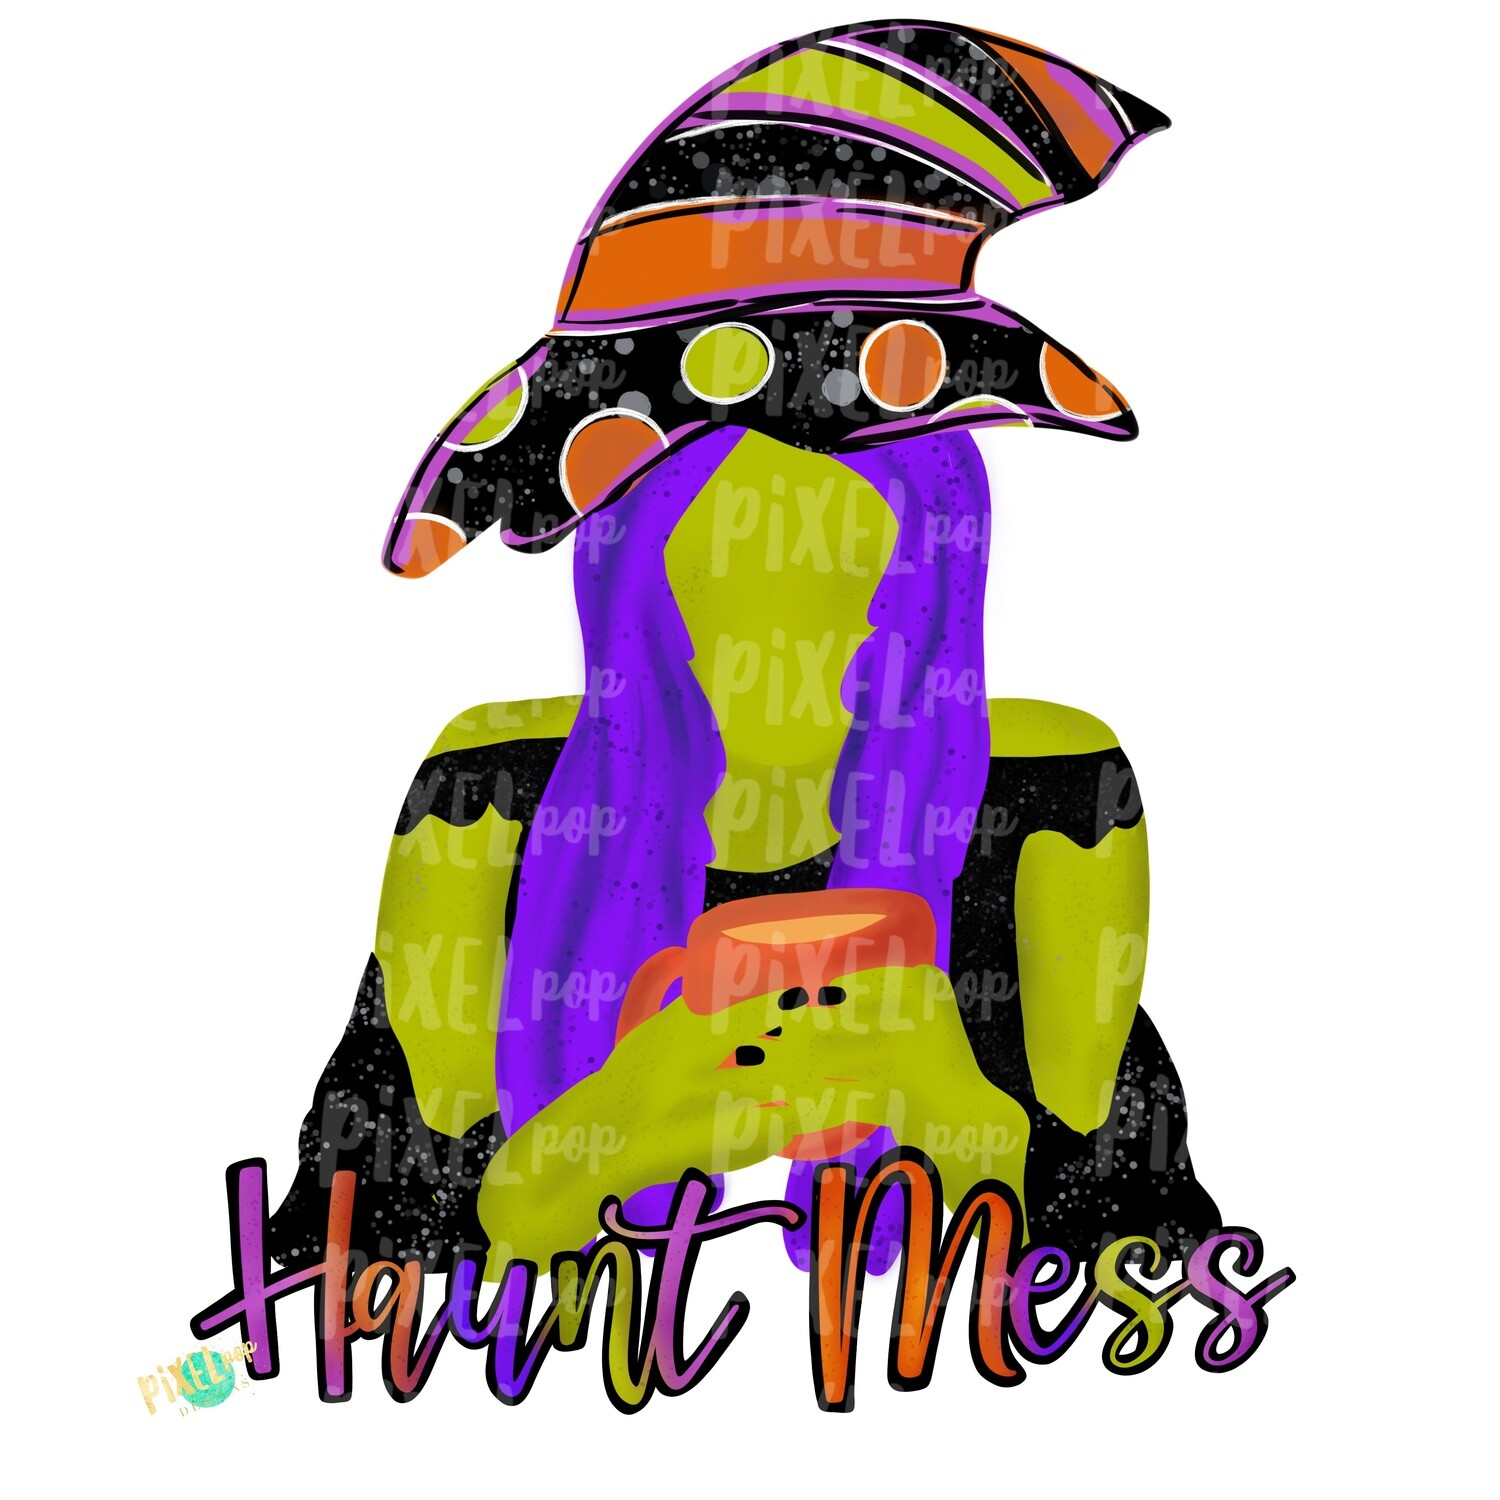 Haunt Mess Halloween Witch PNG | Sublimation | Halloween Design | Digital Art | Sublimation PNG | Digital Download | Printable Artwork | Art